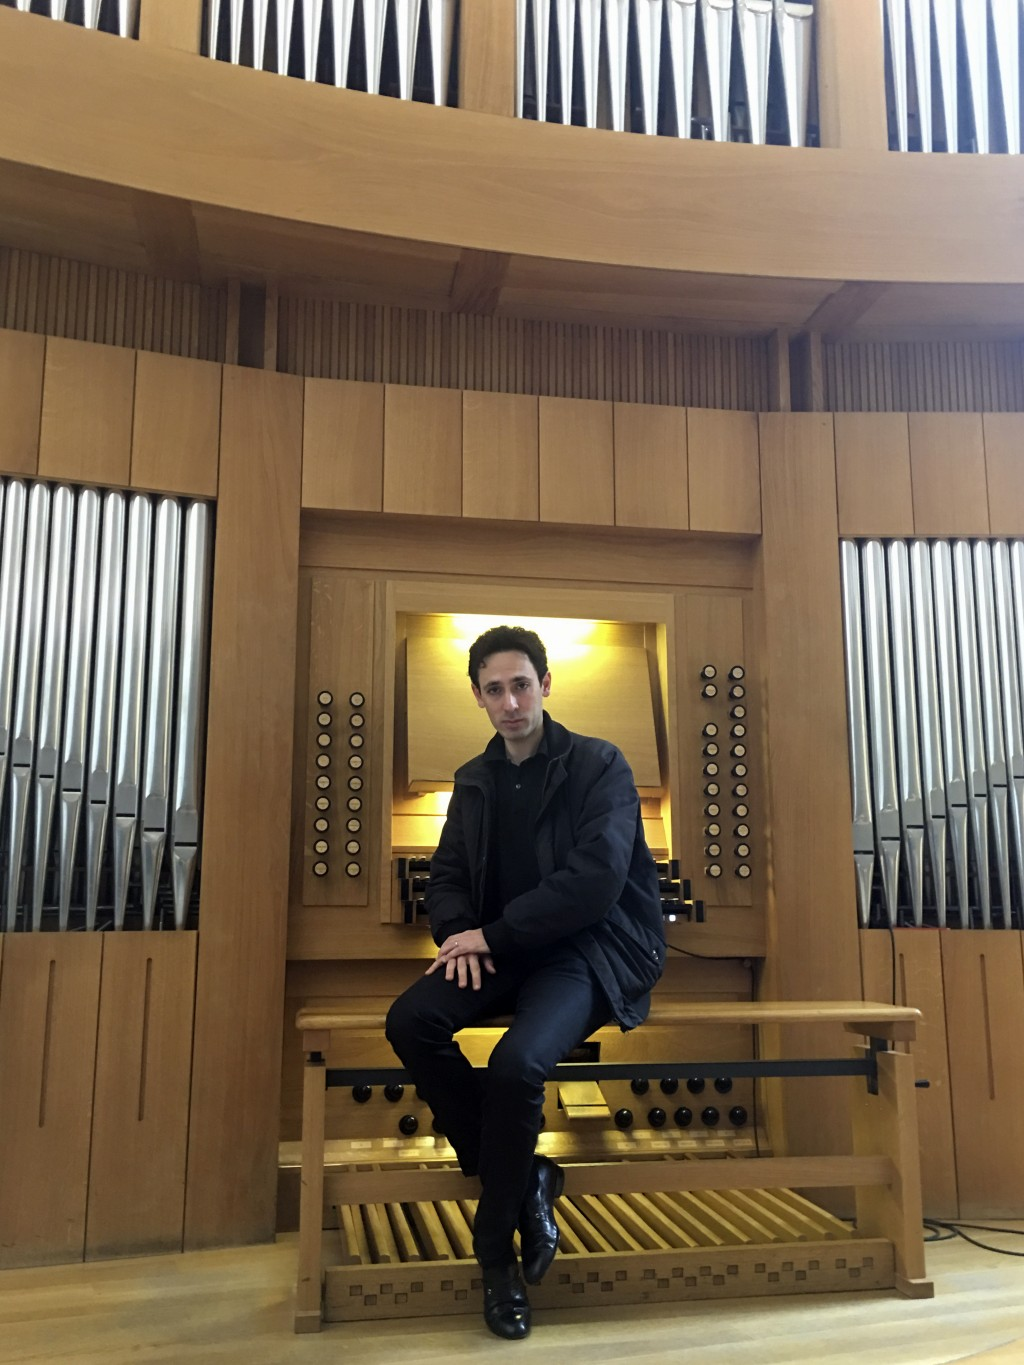 Vincent Dubois, organist at the Great Organ of Notre-Dame de Paris, poses at the organ at Strasbourg Conservatoire (music school), eastern France, Wed...